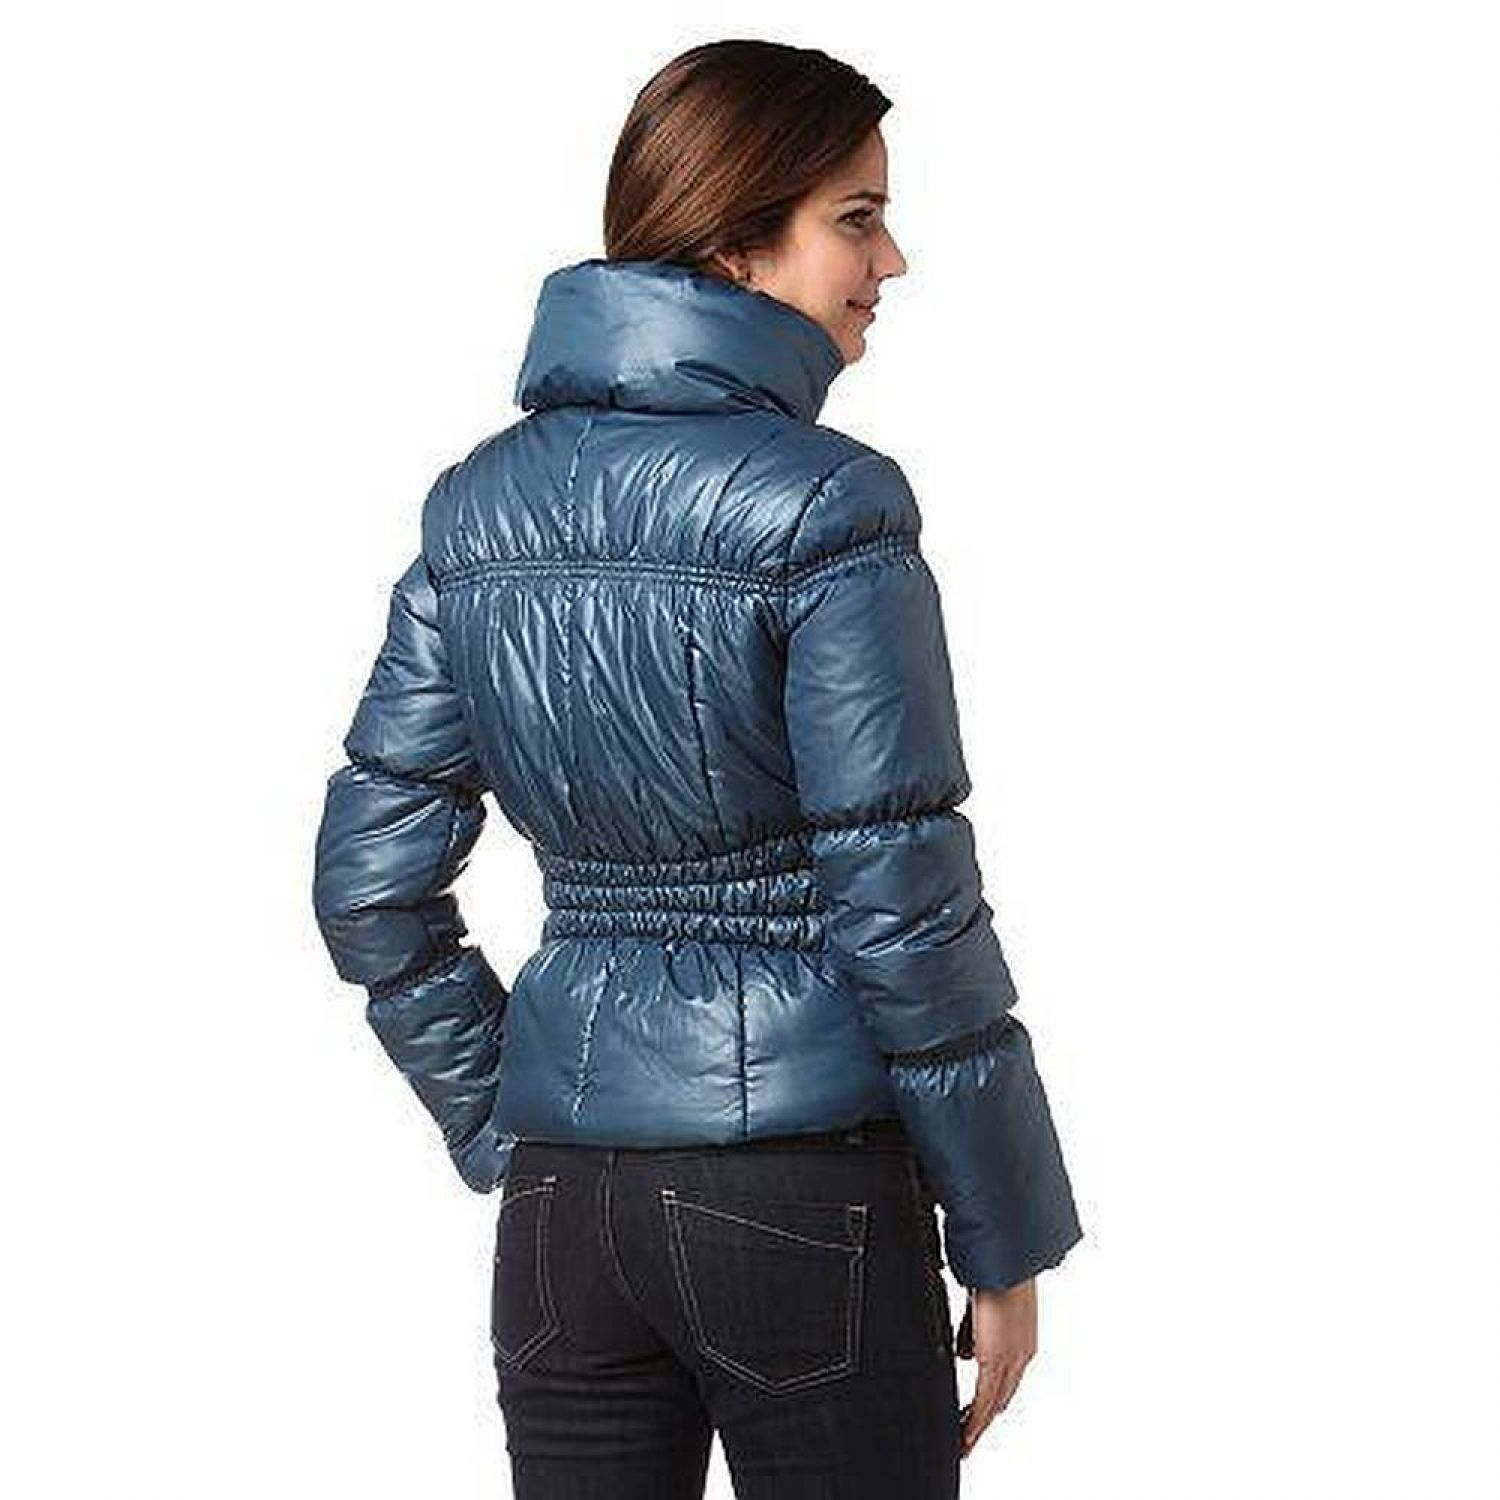 damen maui wowie jacke steppjacke hohe kragen winterjacke funktionsjacke ski ebay. Black Bedroom Furniture Sets. Home Design Ideas